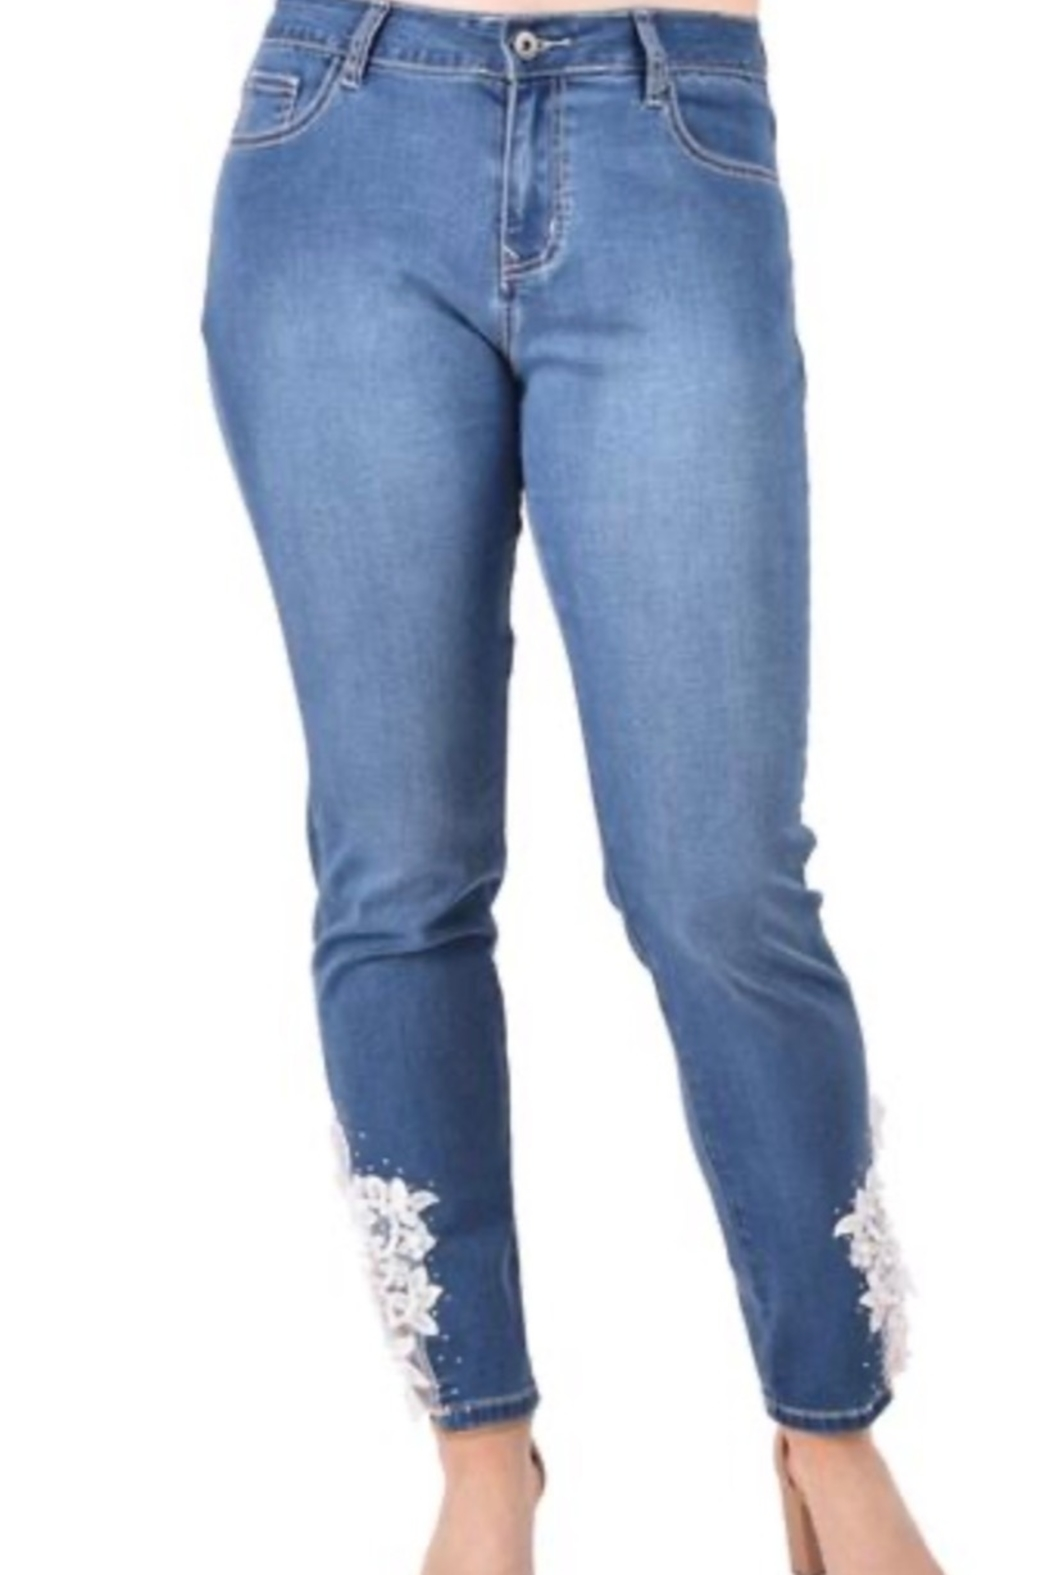 Ethyl Fresno ankle skinny jean with lace trim - Main Image